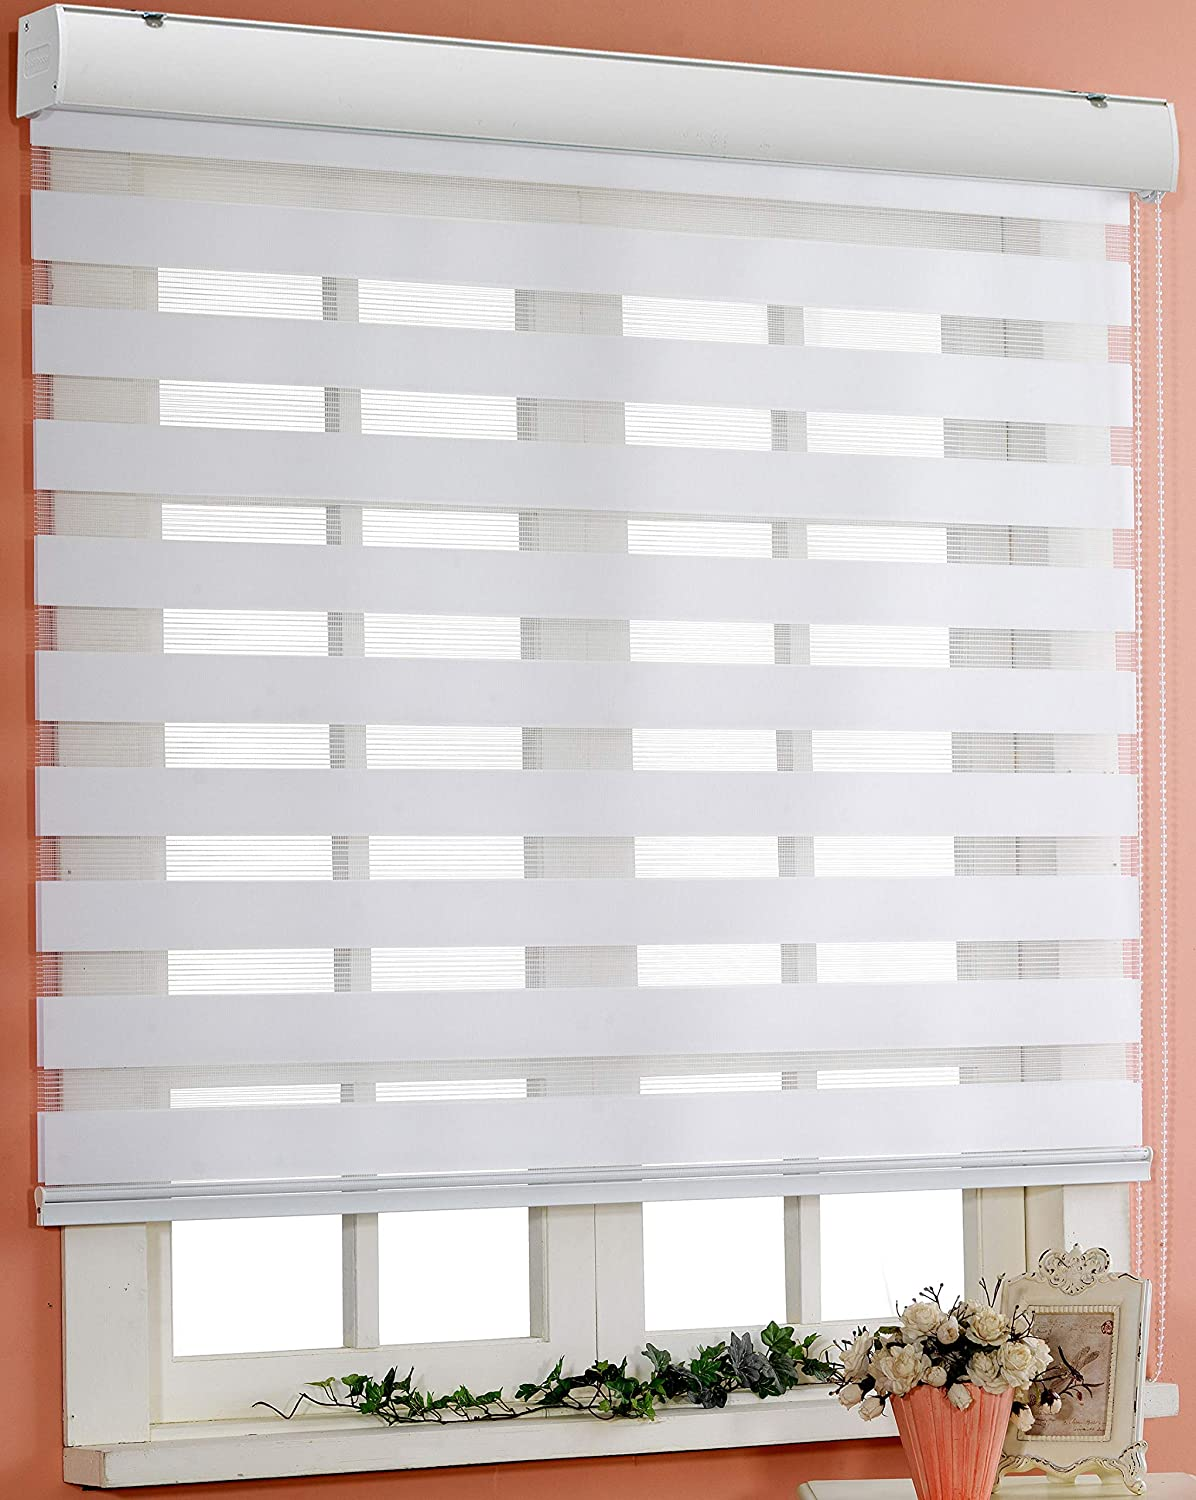 Custom Cut to Size, [Winsharp Basic, White, W 20 x H 64 inch] Horizontal Window Shade Blind Zebra Dual Roller Blinds Foiresoft